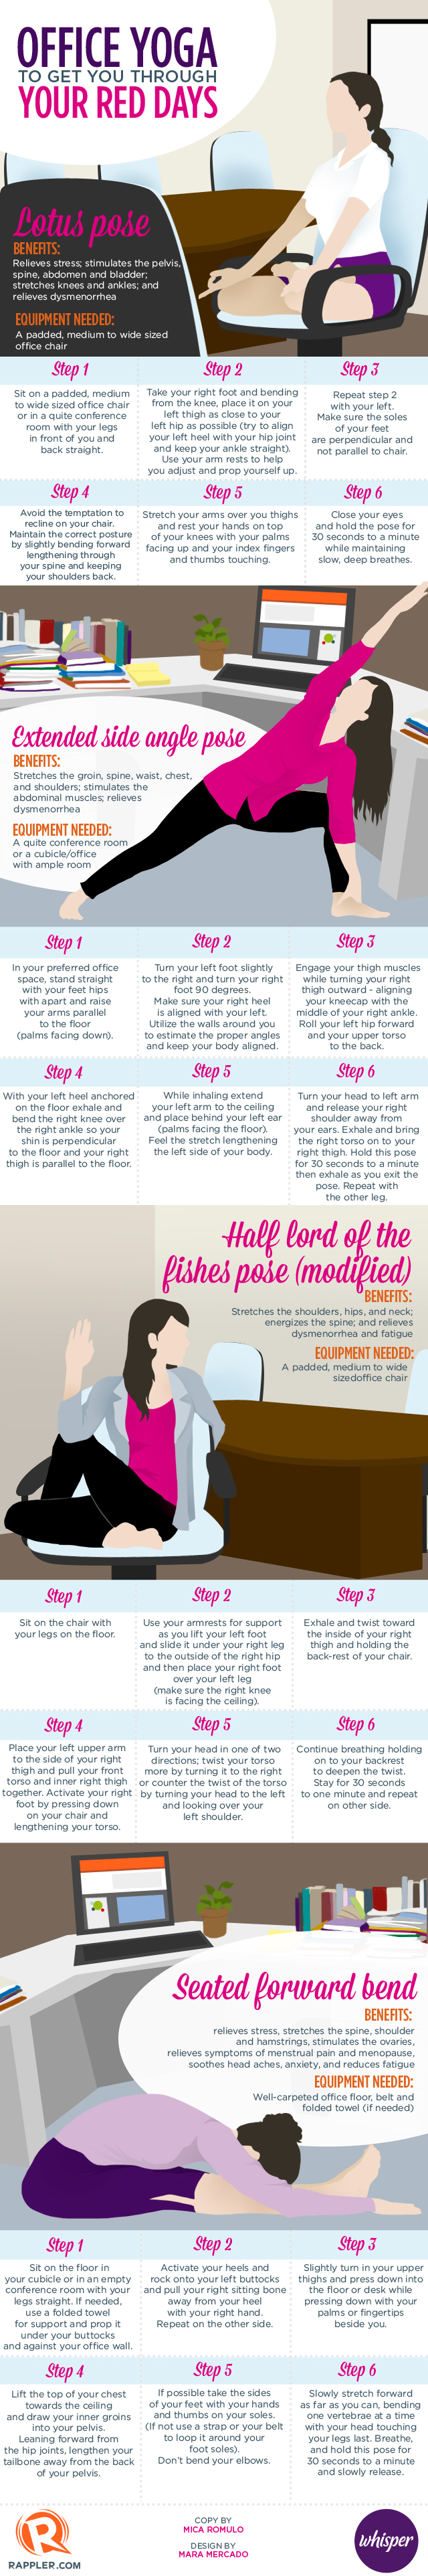 Office Yoga vs. Menstrual Cramps [Infographic] | ecogreenlove